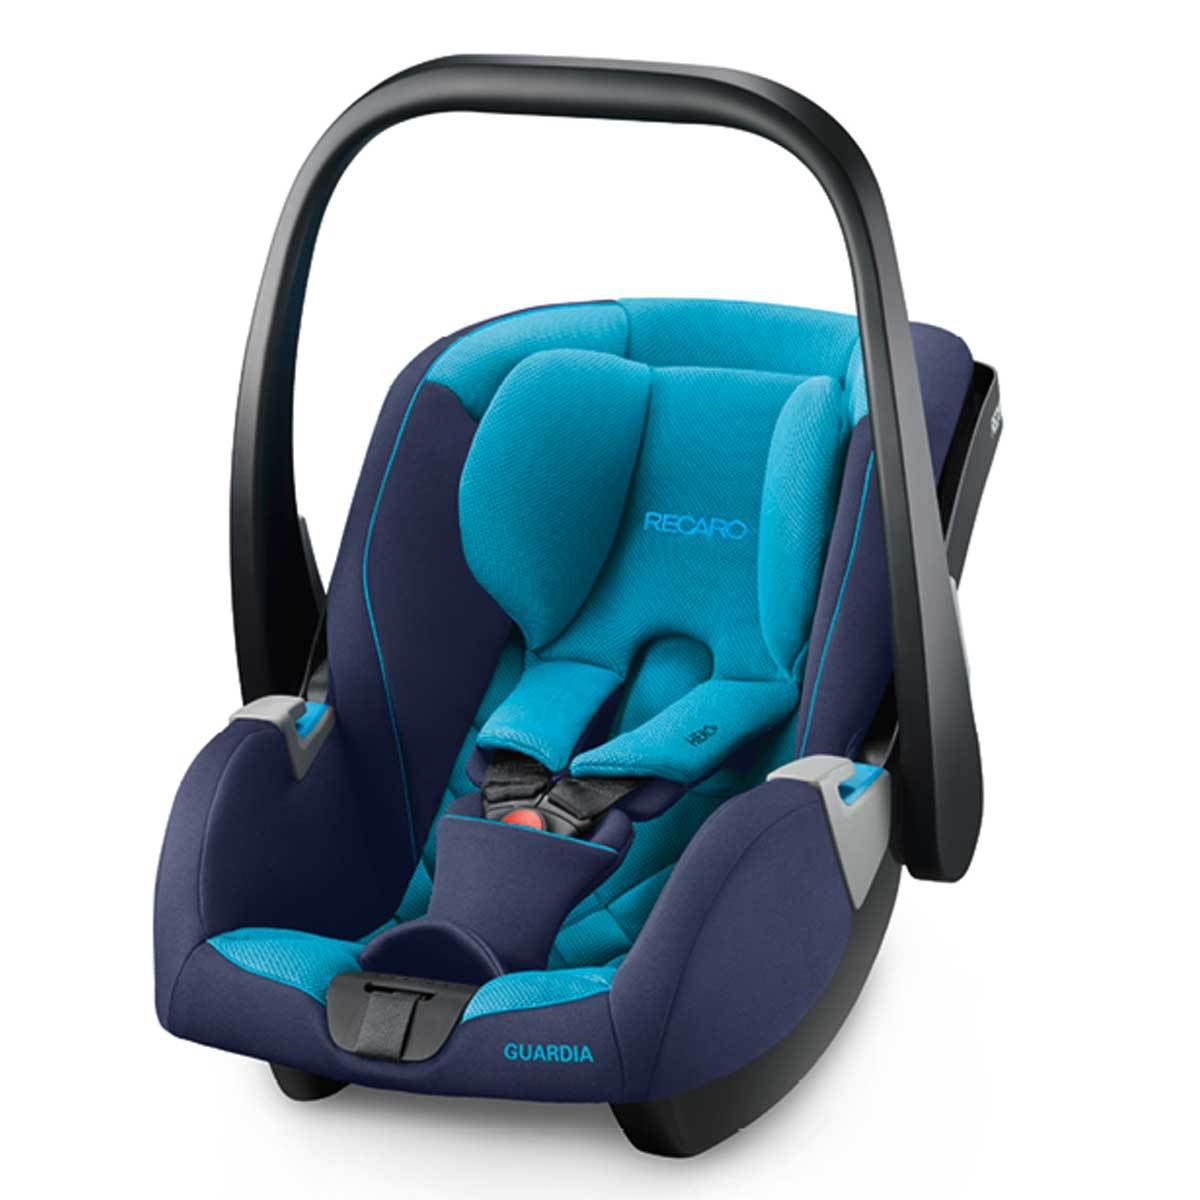 recaro si ge auto guardia isofix groupe 0 xenon blue si ge auto et coque recaro sur l. Black Bedroom Furniture Sets. Home Design Ideas